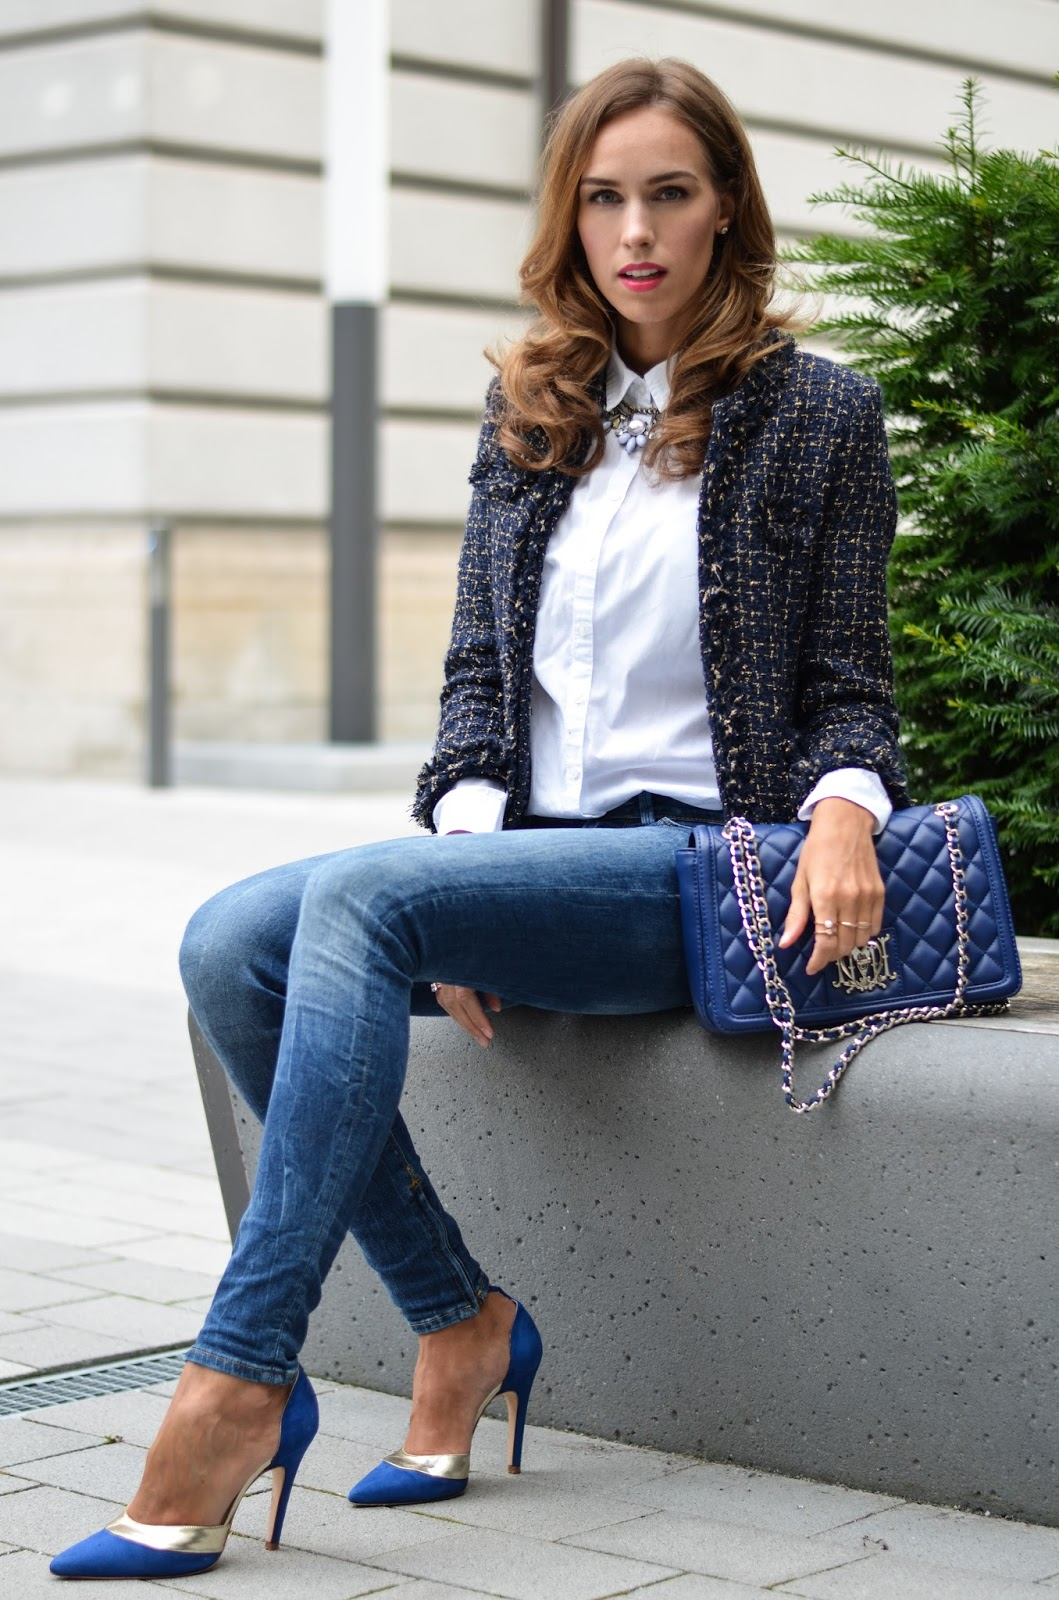 kristjaana mere german munich fashion blogger